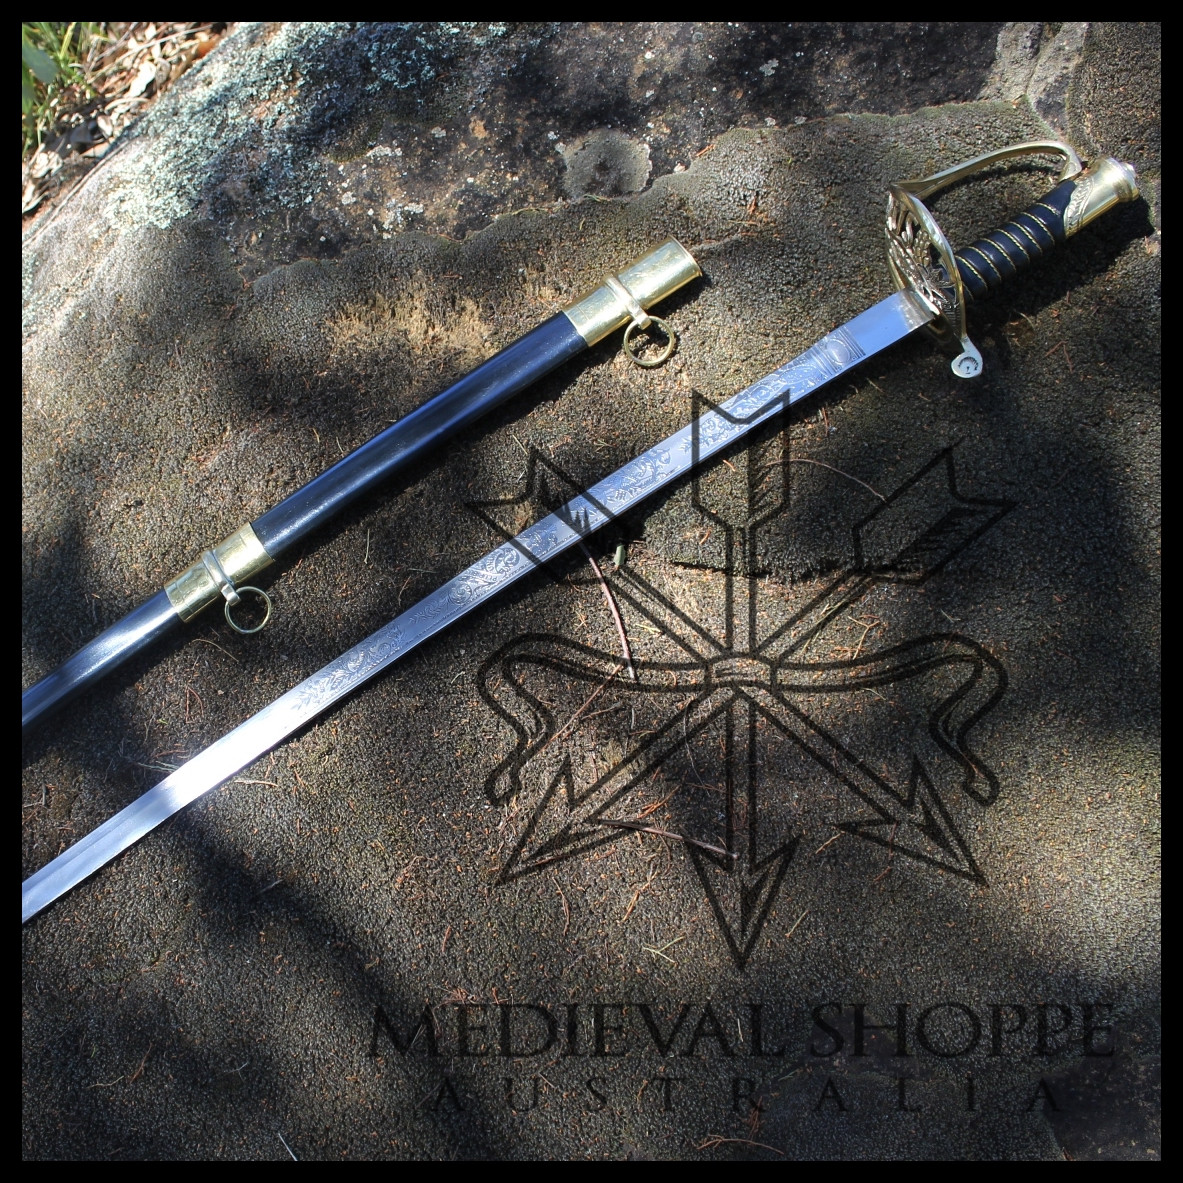 Model 1850 Army Staff & Field Officers' Sword